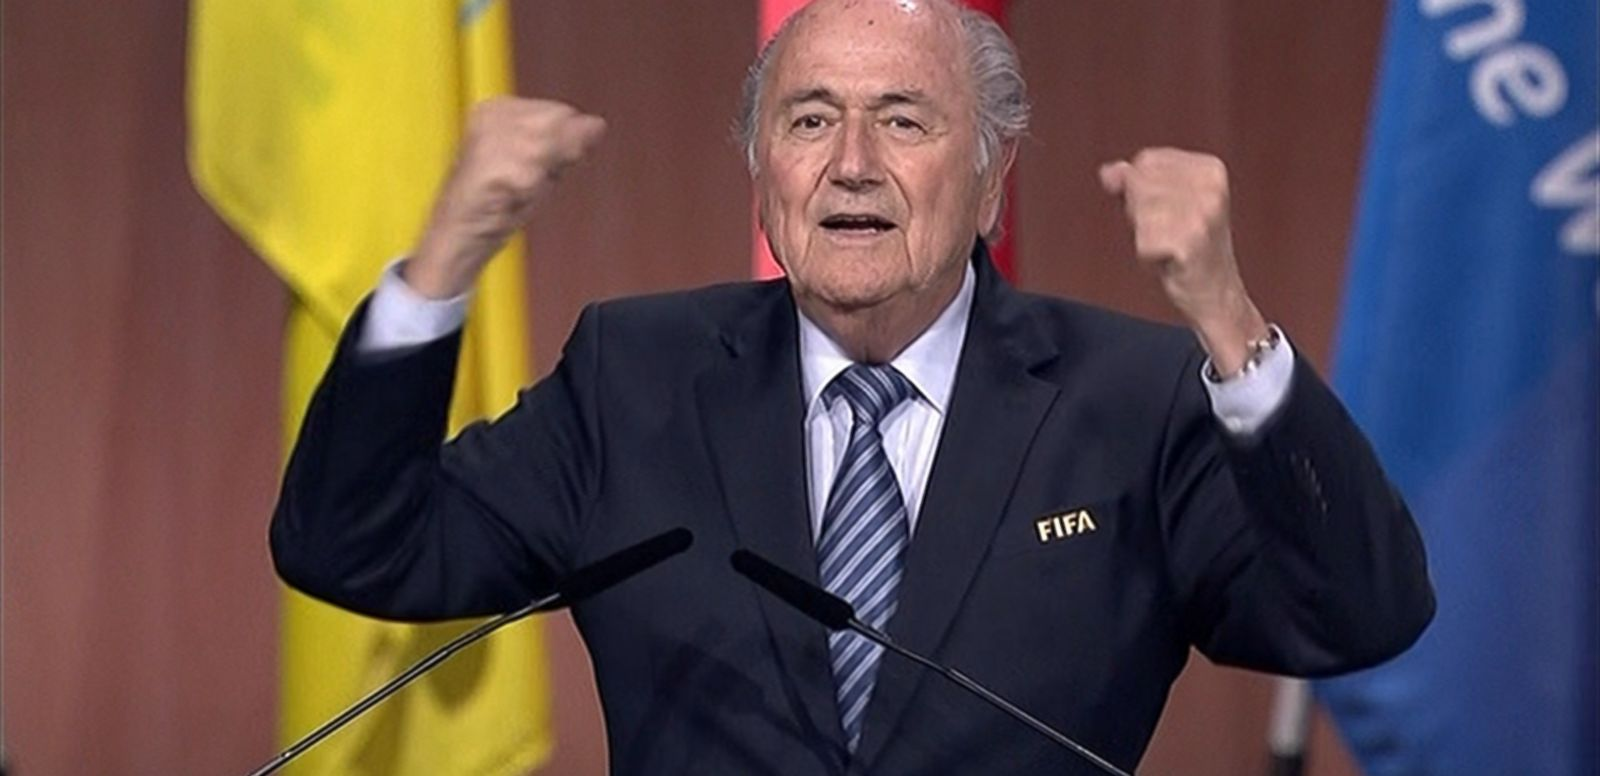 VIDEO: Blatter was re-elected to a fifth term over Prince Ali Bin Al-Hussein of Jordan amid allegations of corruption and bribery in the soccer organization's governing body.